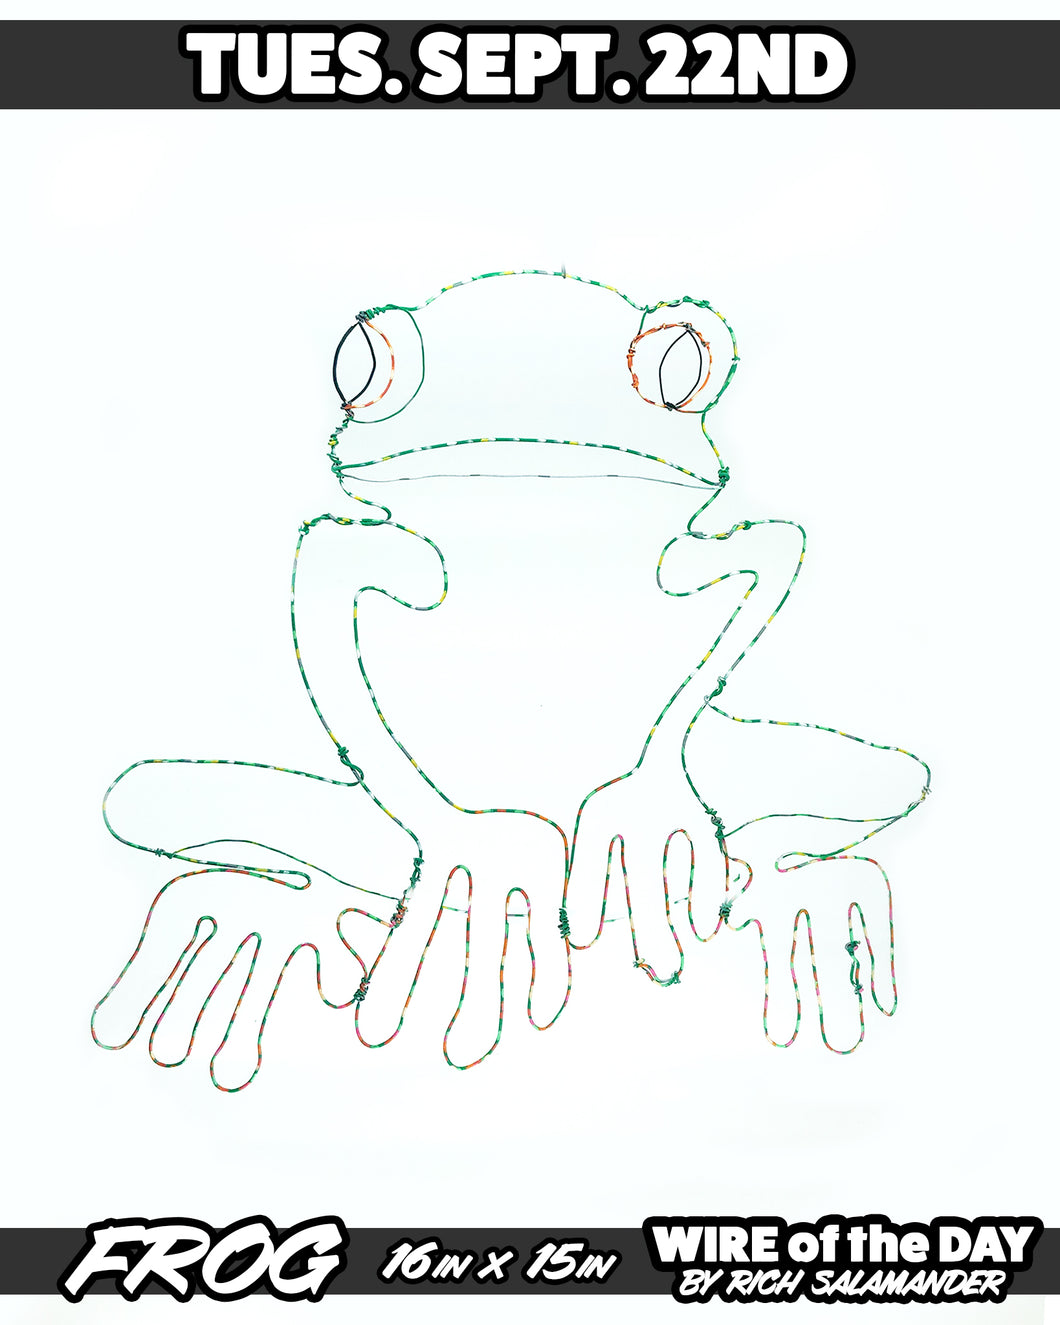 WIRE of the DAY FROG